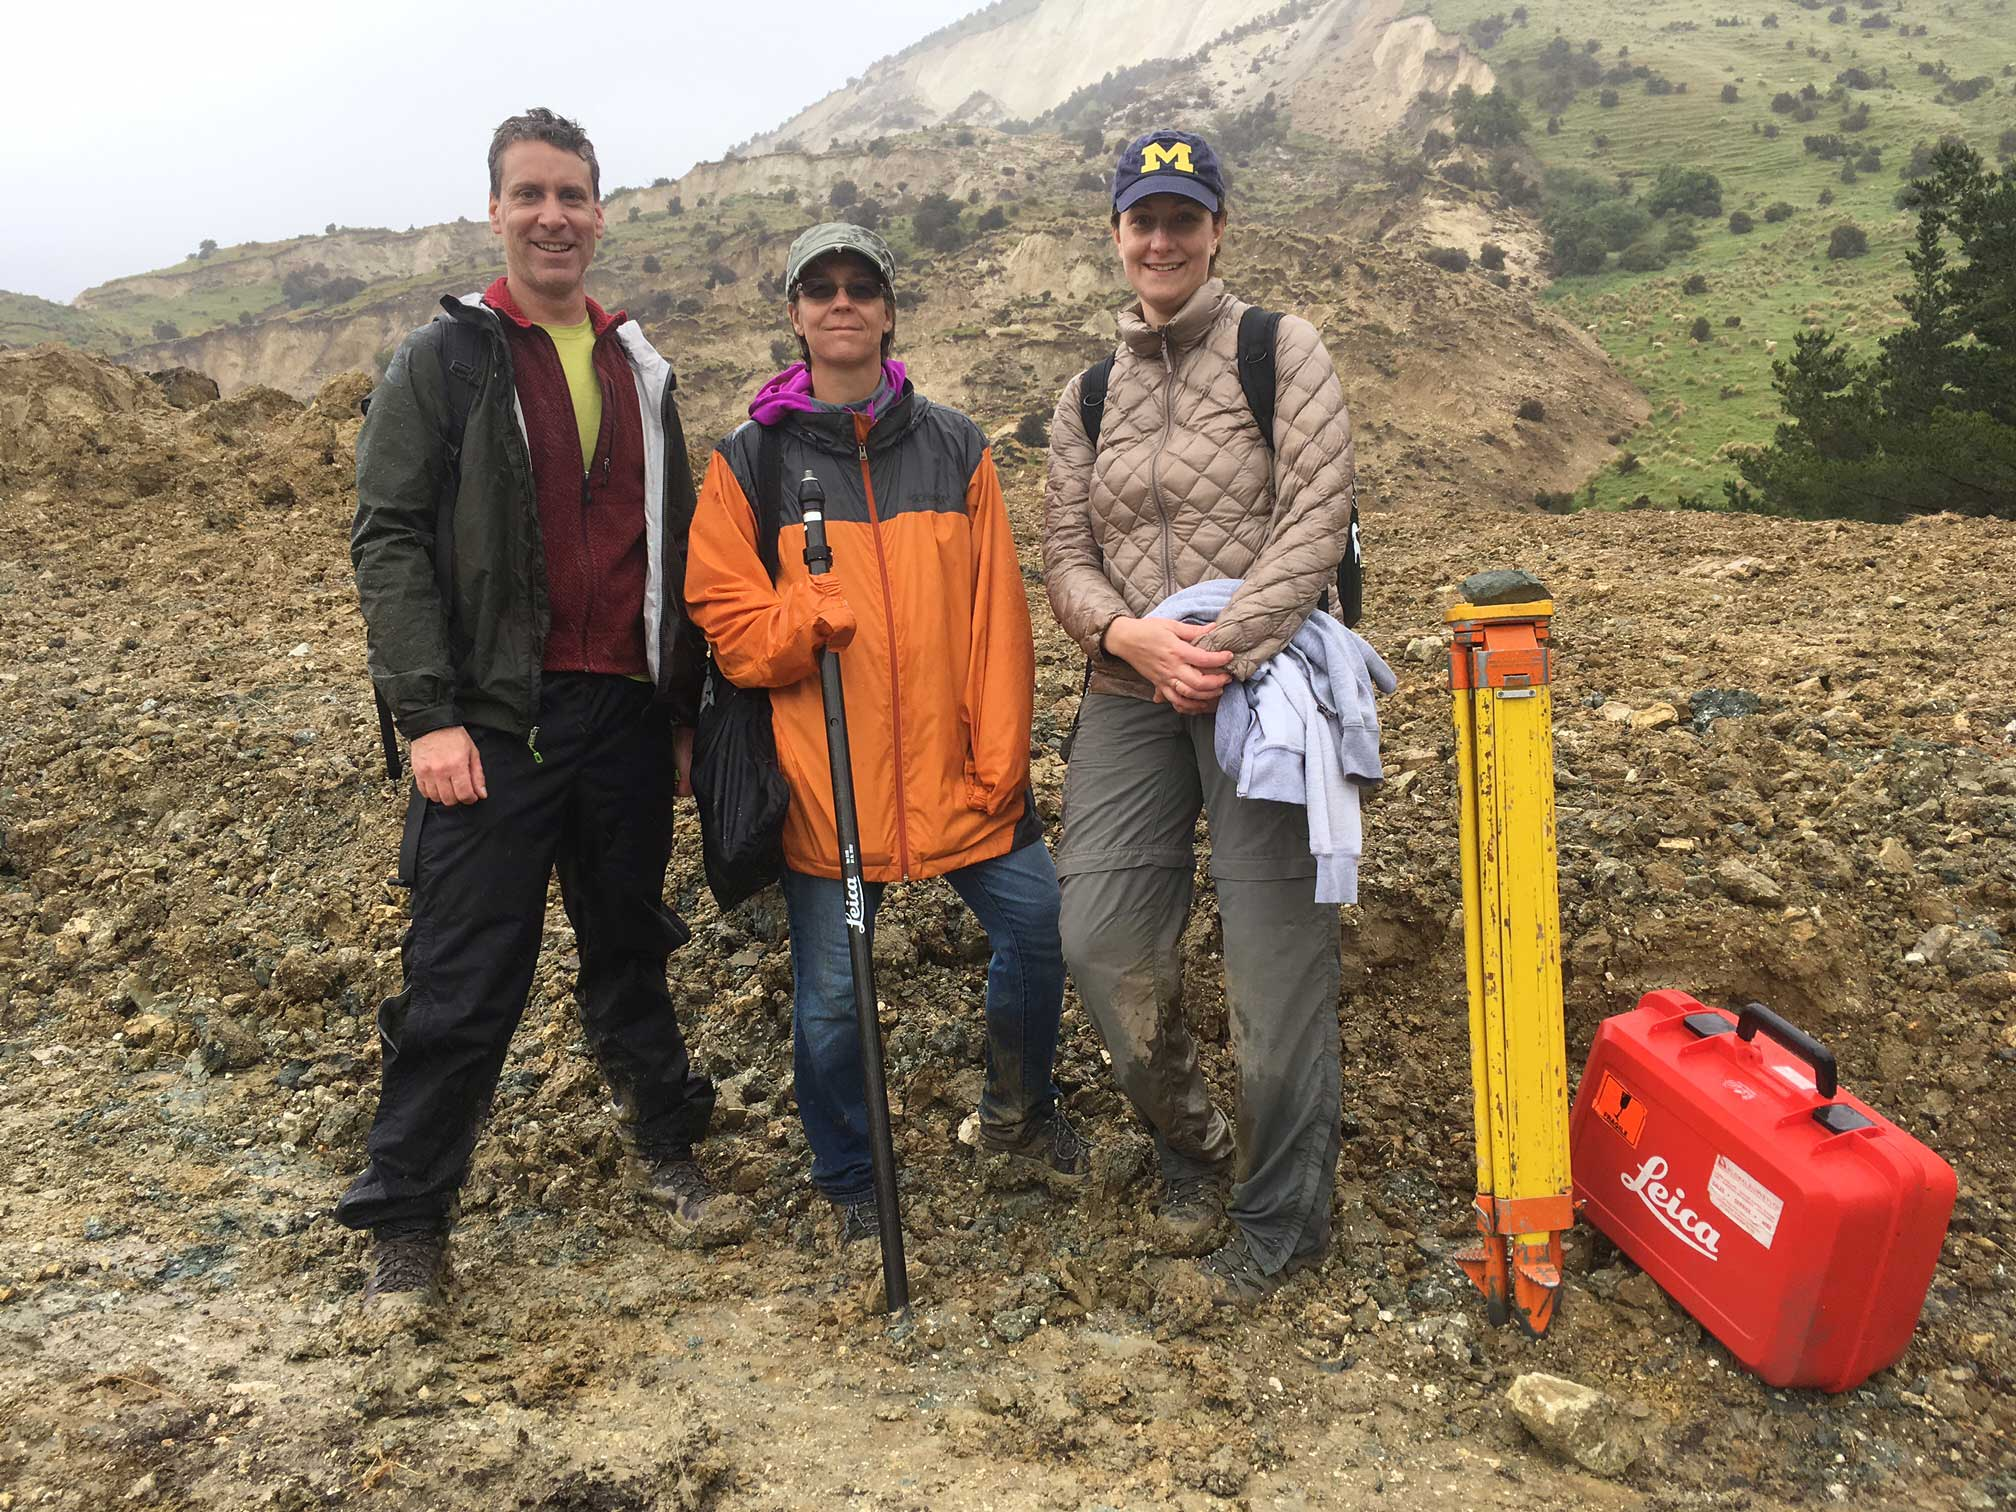 University of Michigan researcher Adda Athanasopoulos-Zekkos, right, in the field in New Zealand with two members of the Geotechnical Engineering Extreme Events Reconnaissance Association, J. Wartman of the University of Washington, left, and E. Rathje of the University of Texas. Image credit: John Manousakis